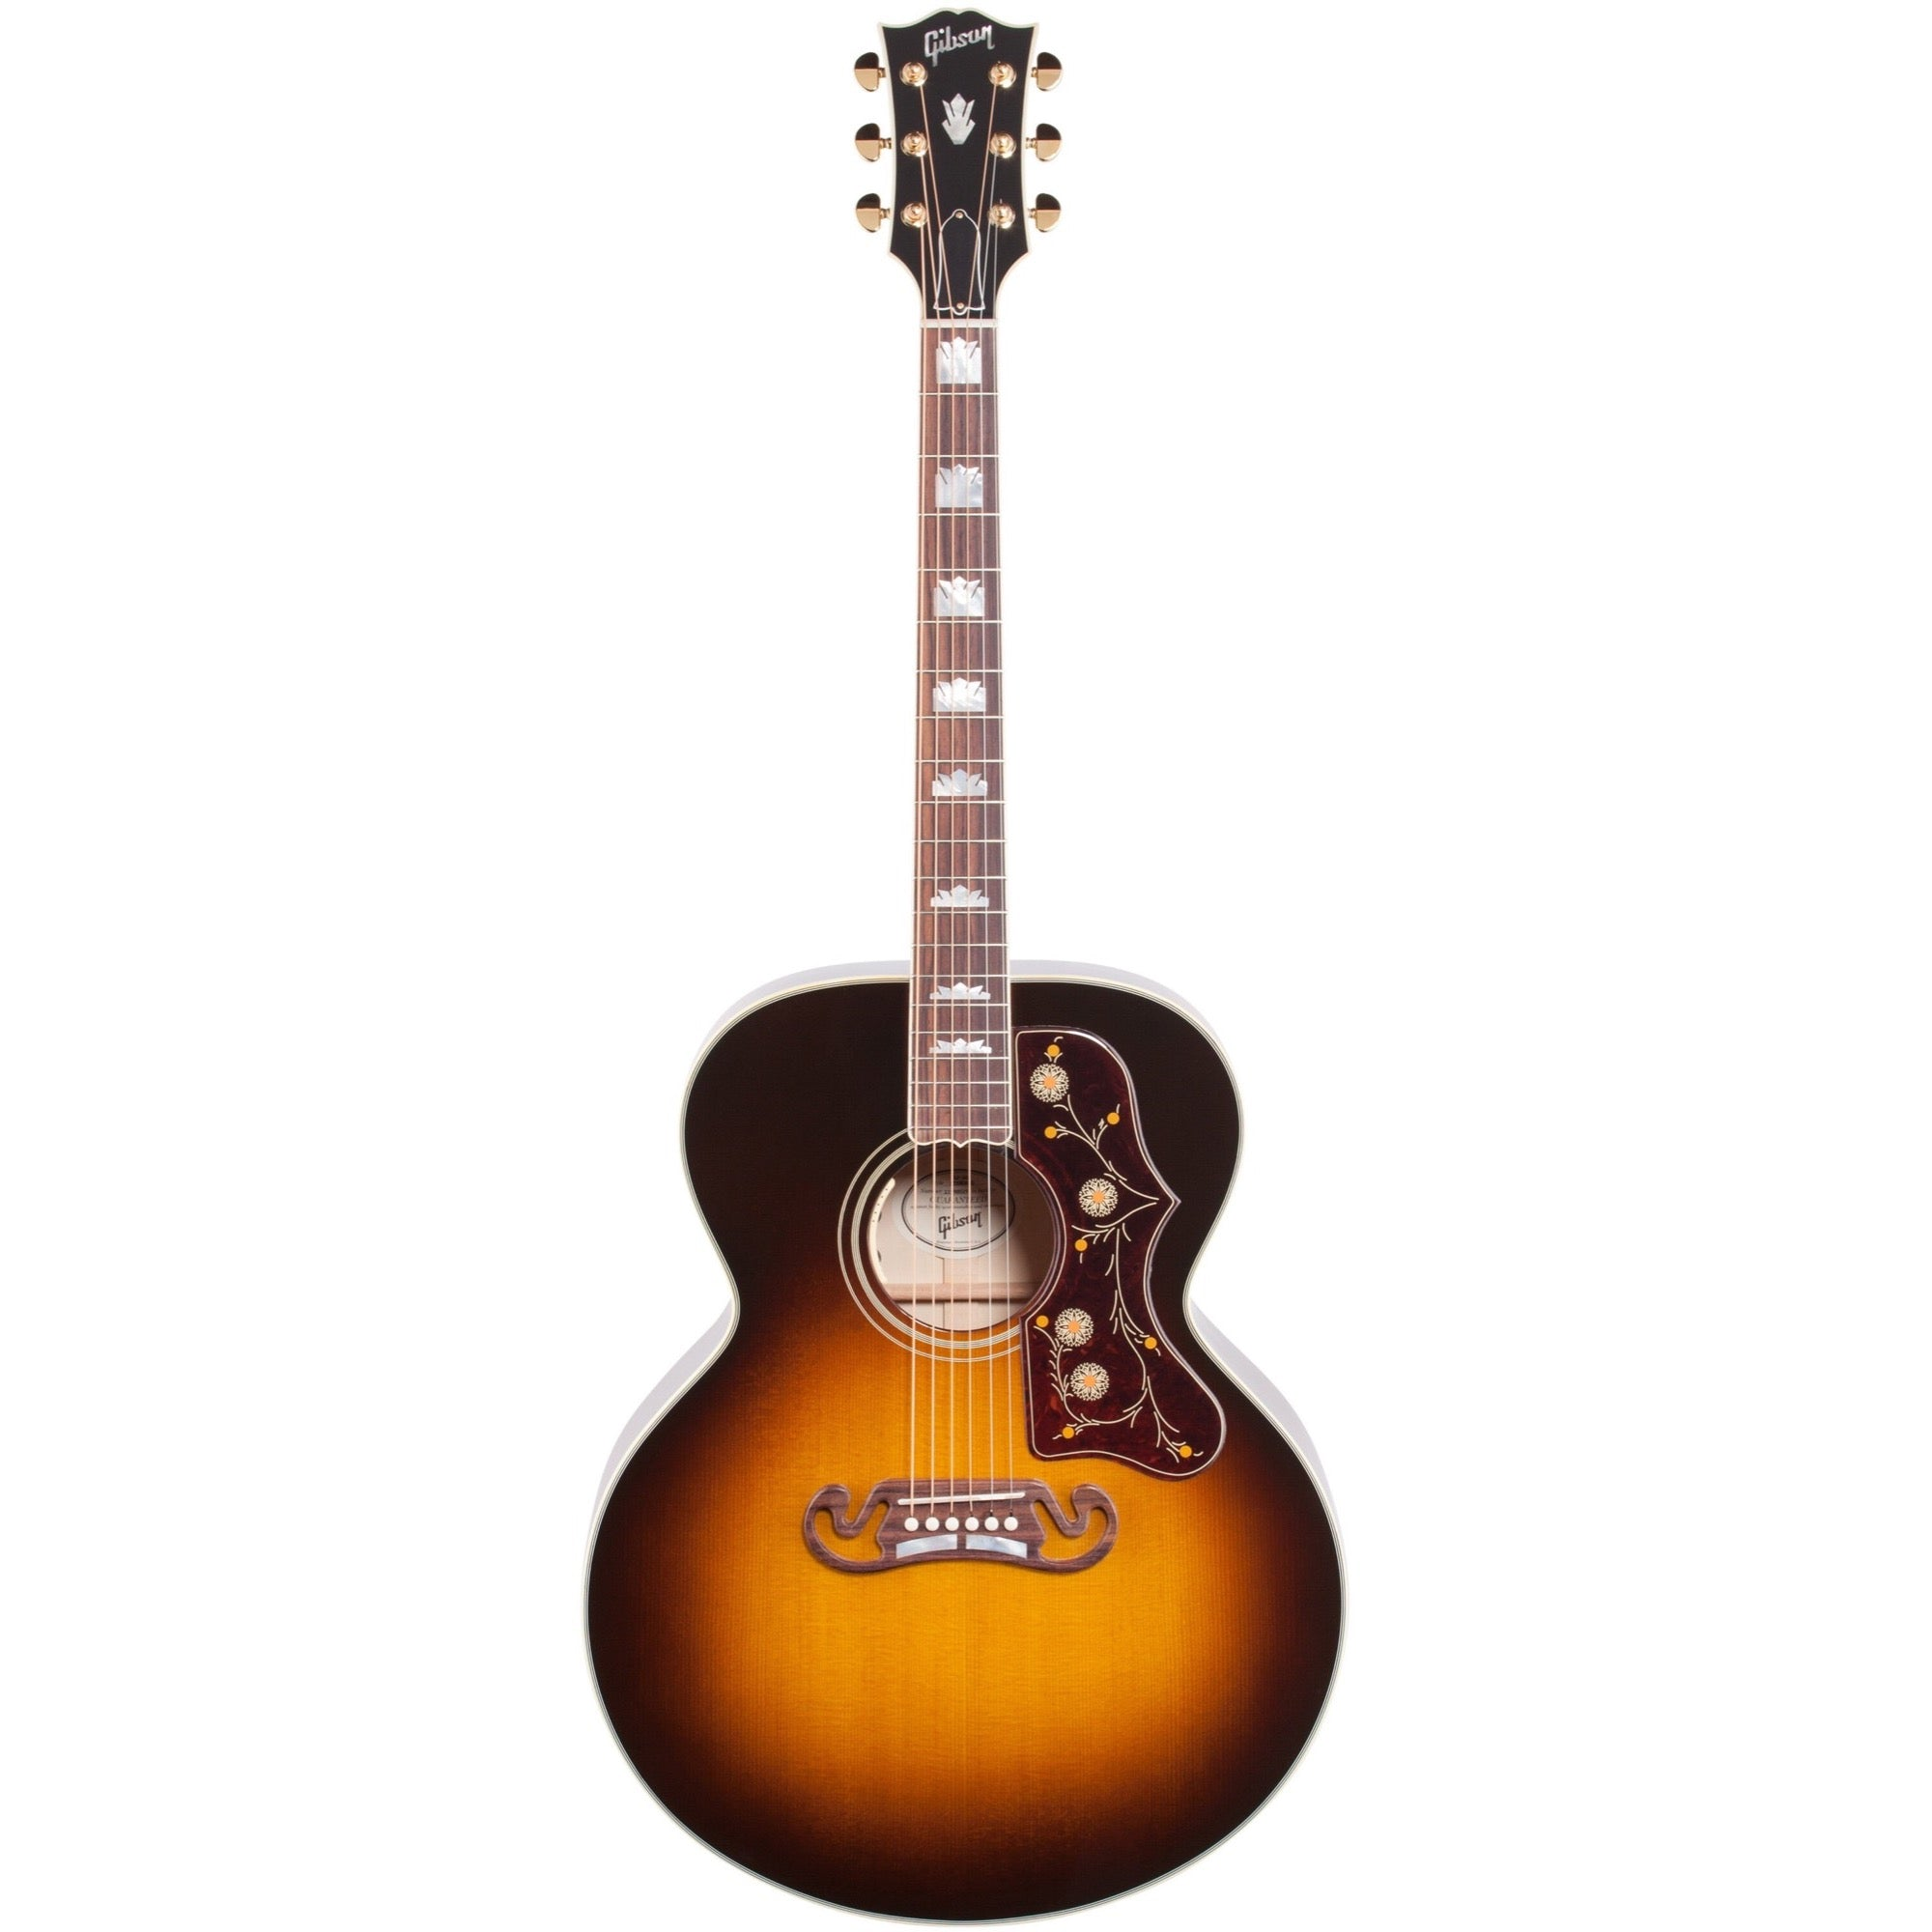 Gibson J-200 Standard Jumbo Acoustic-Electric Guitar (with Case), Vintage Sunburst